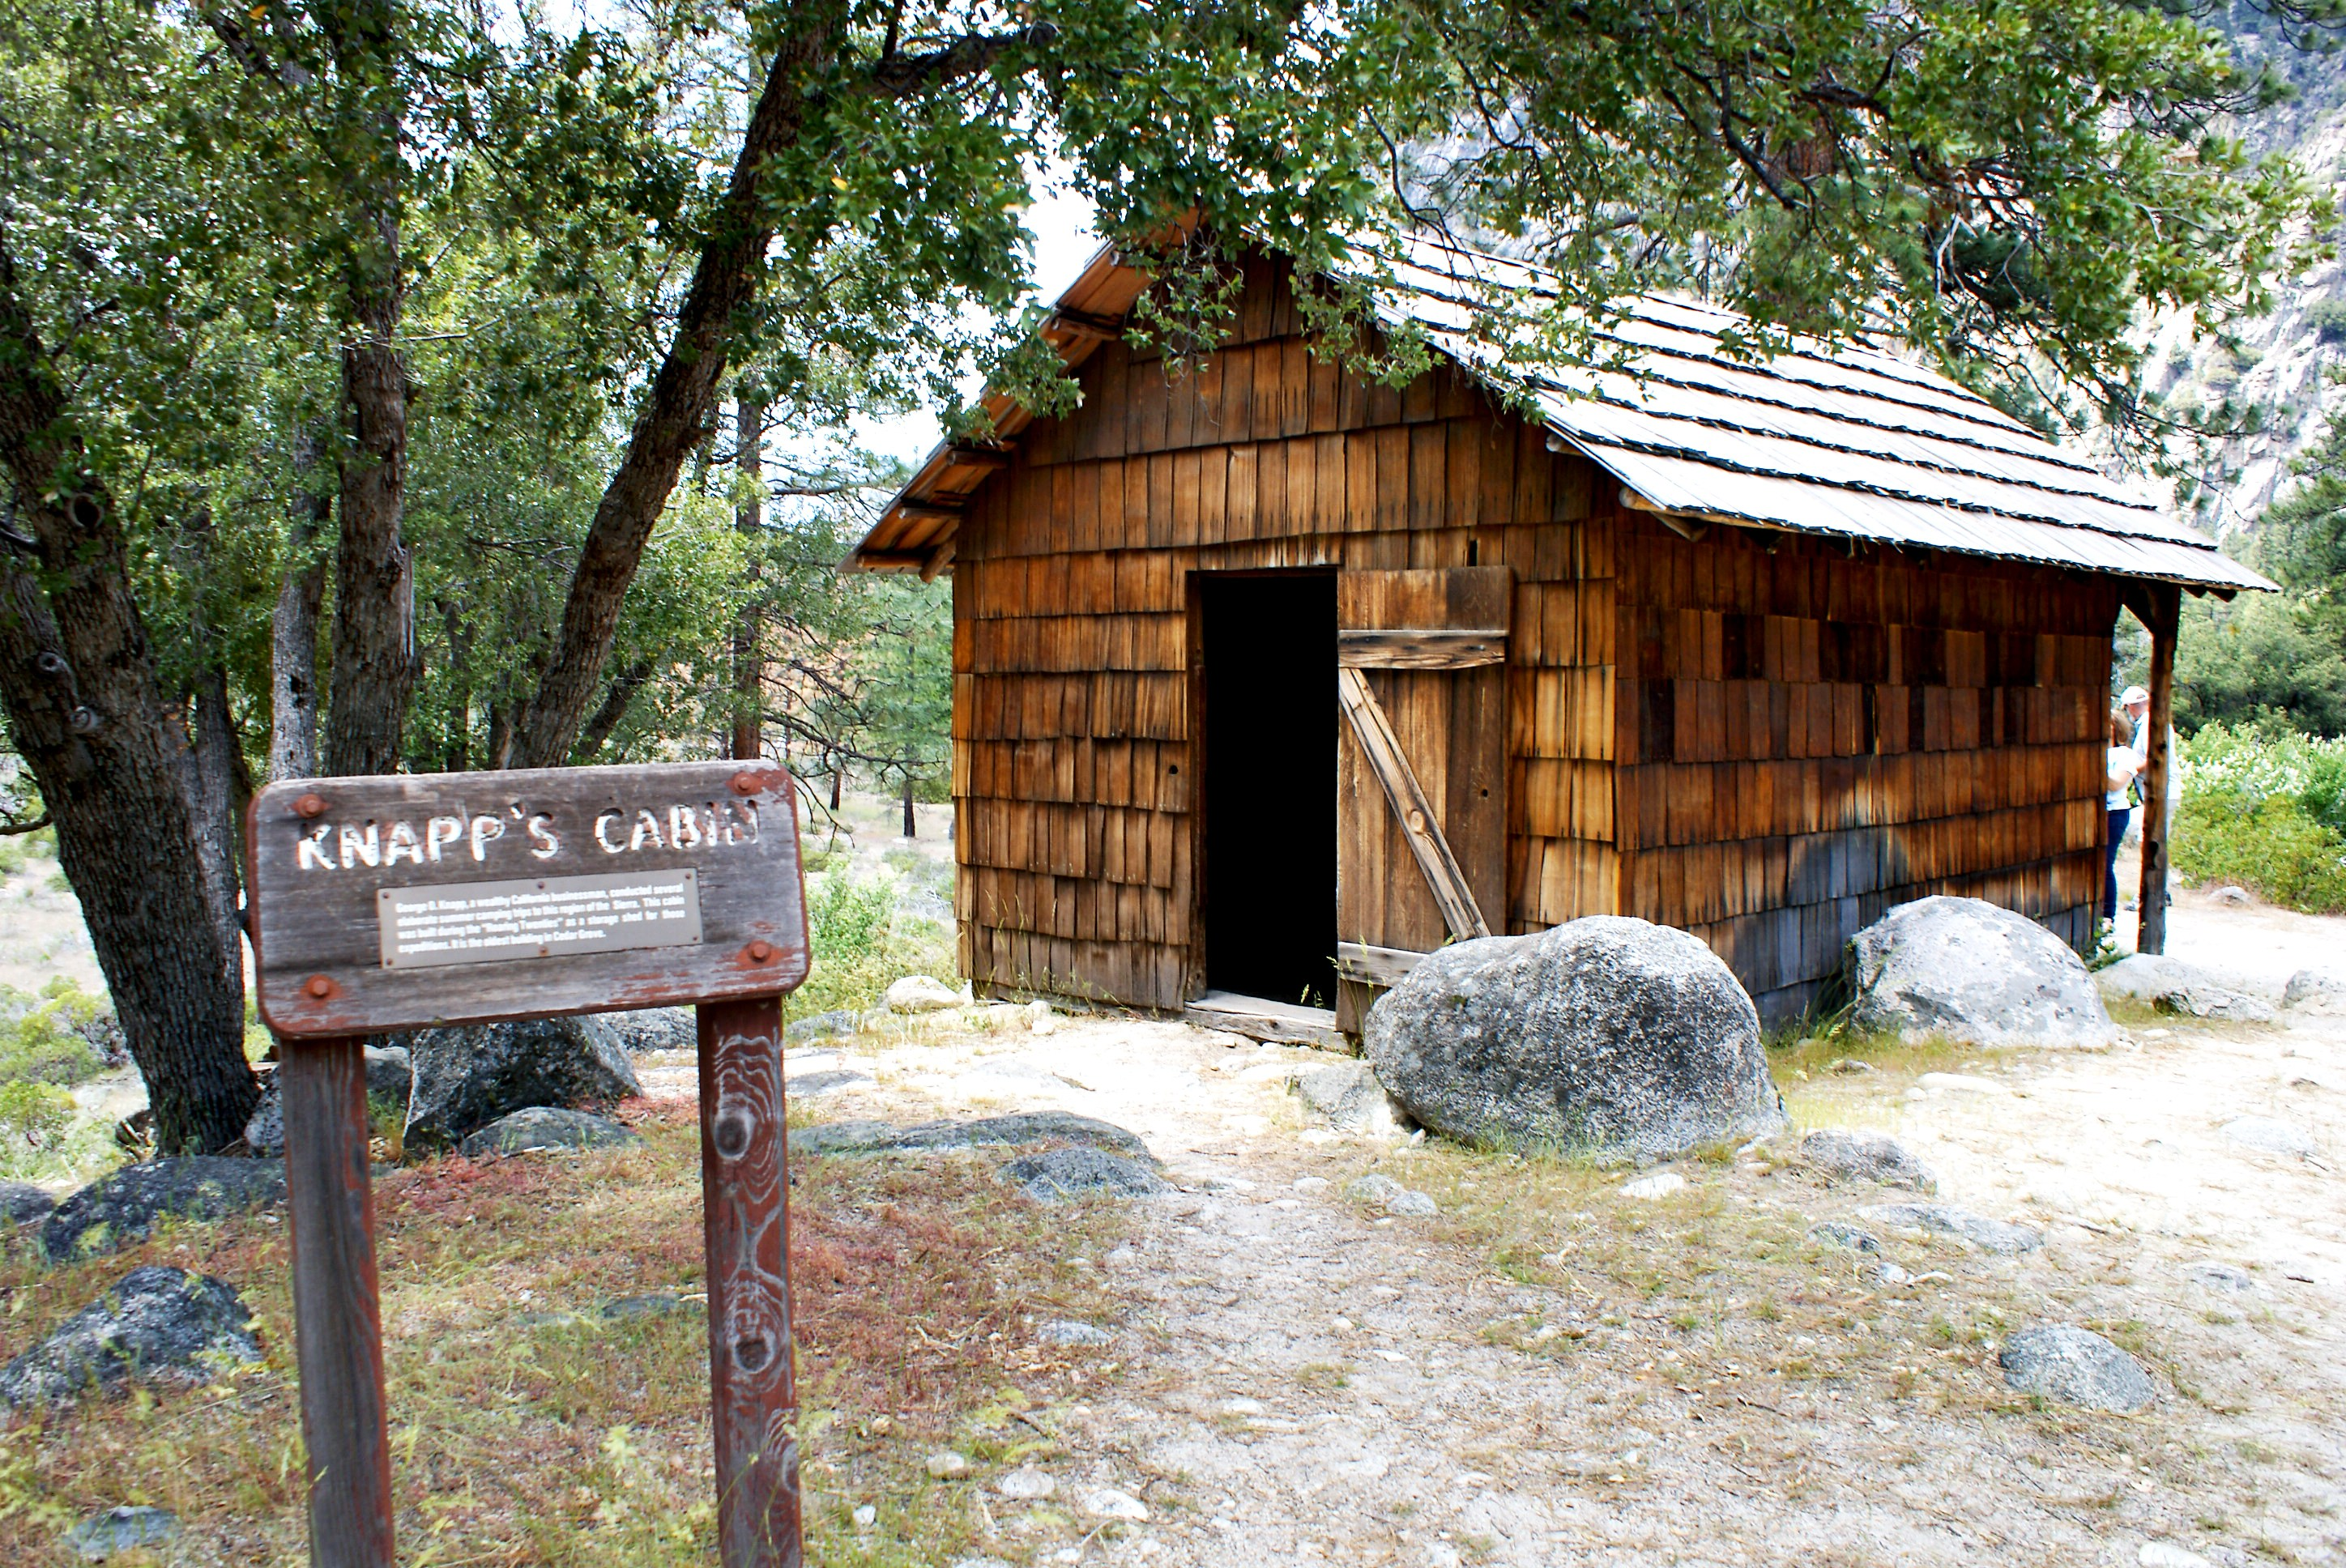 en il canyon parks hut blog it national sequoia ulivita in cabin cabins kings park and